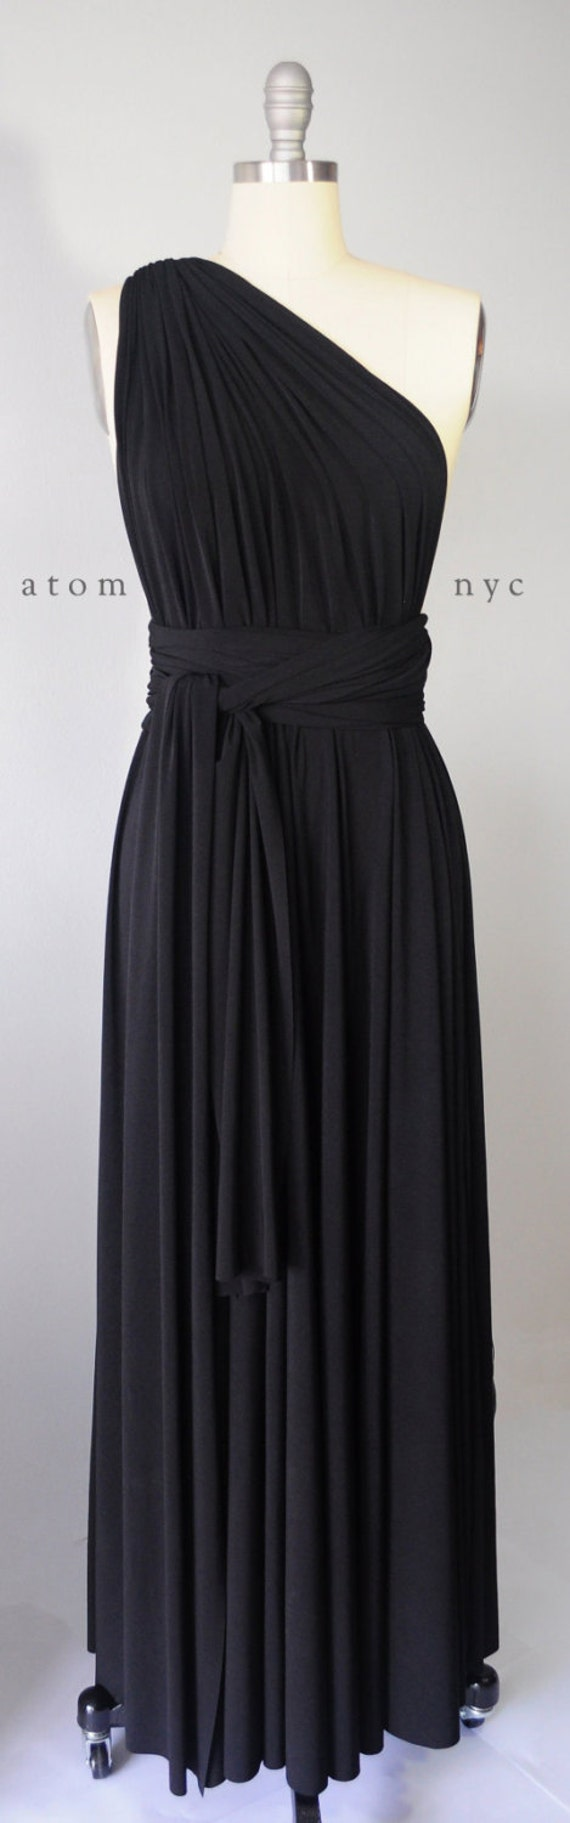 Black Long Maxi Infinity Dress Gown Convertible By Atomattire